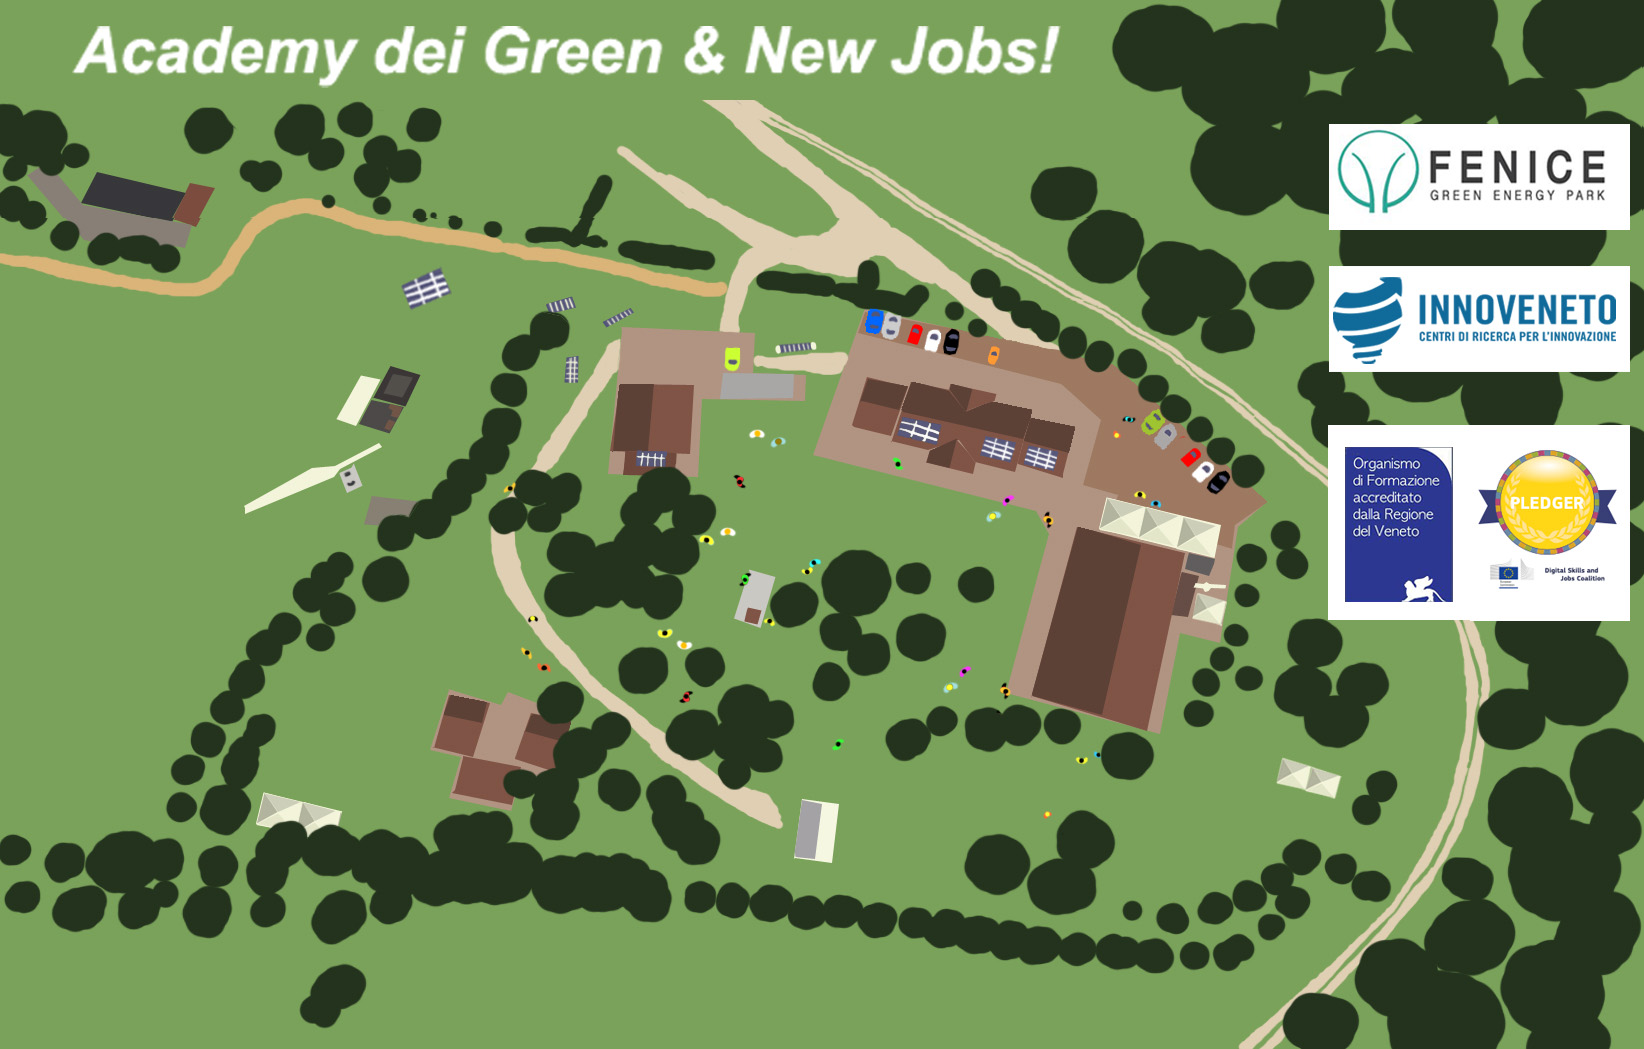 Academy dei Green e New Jobs